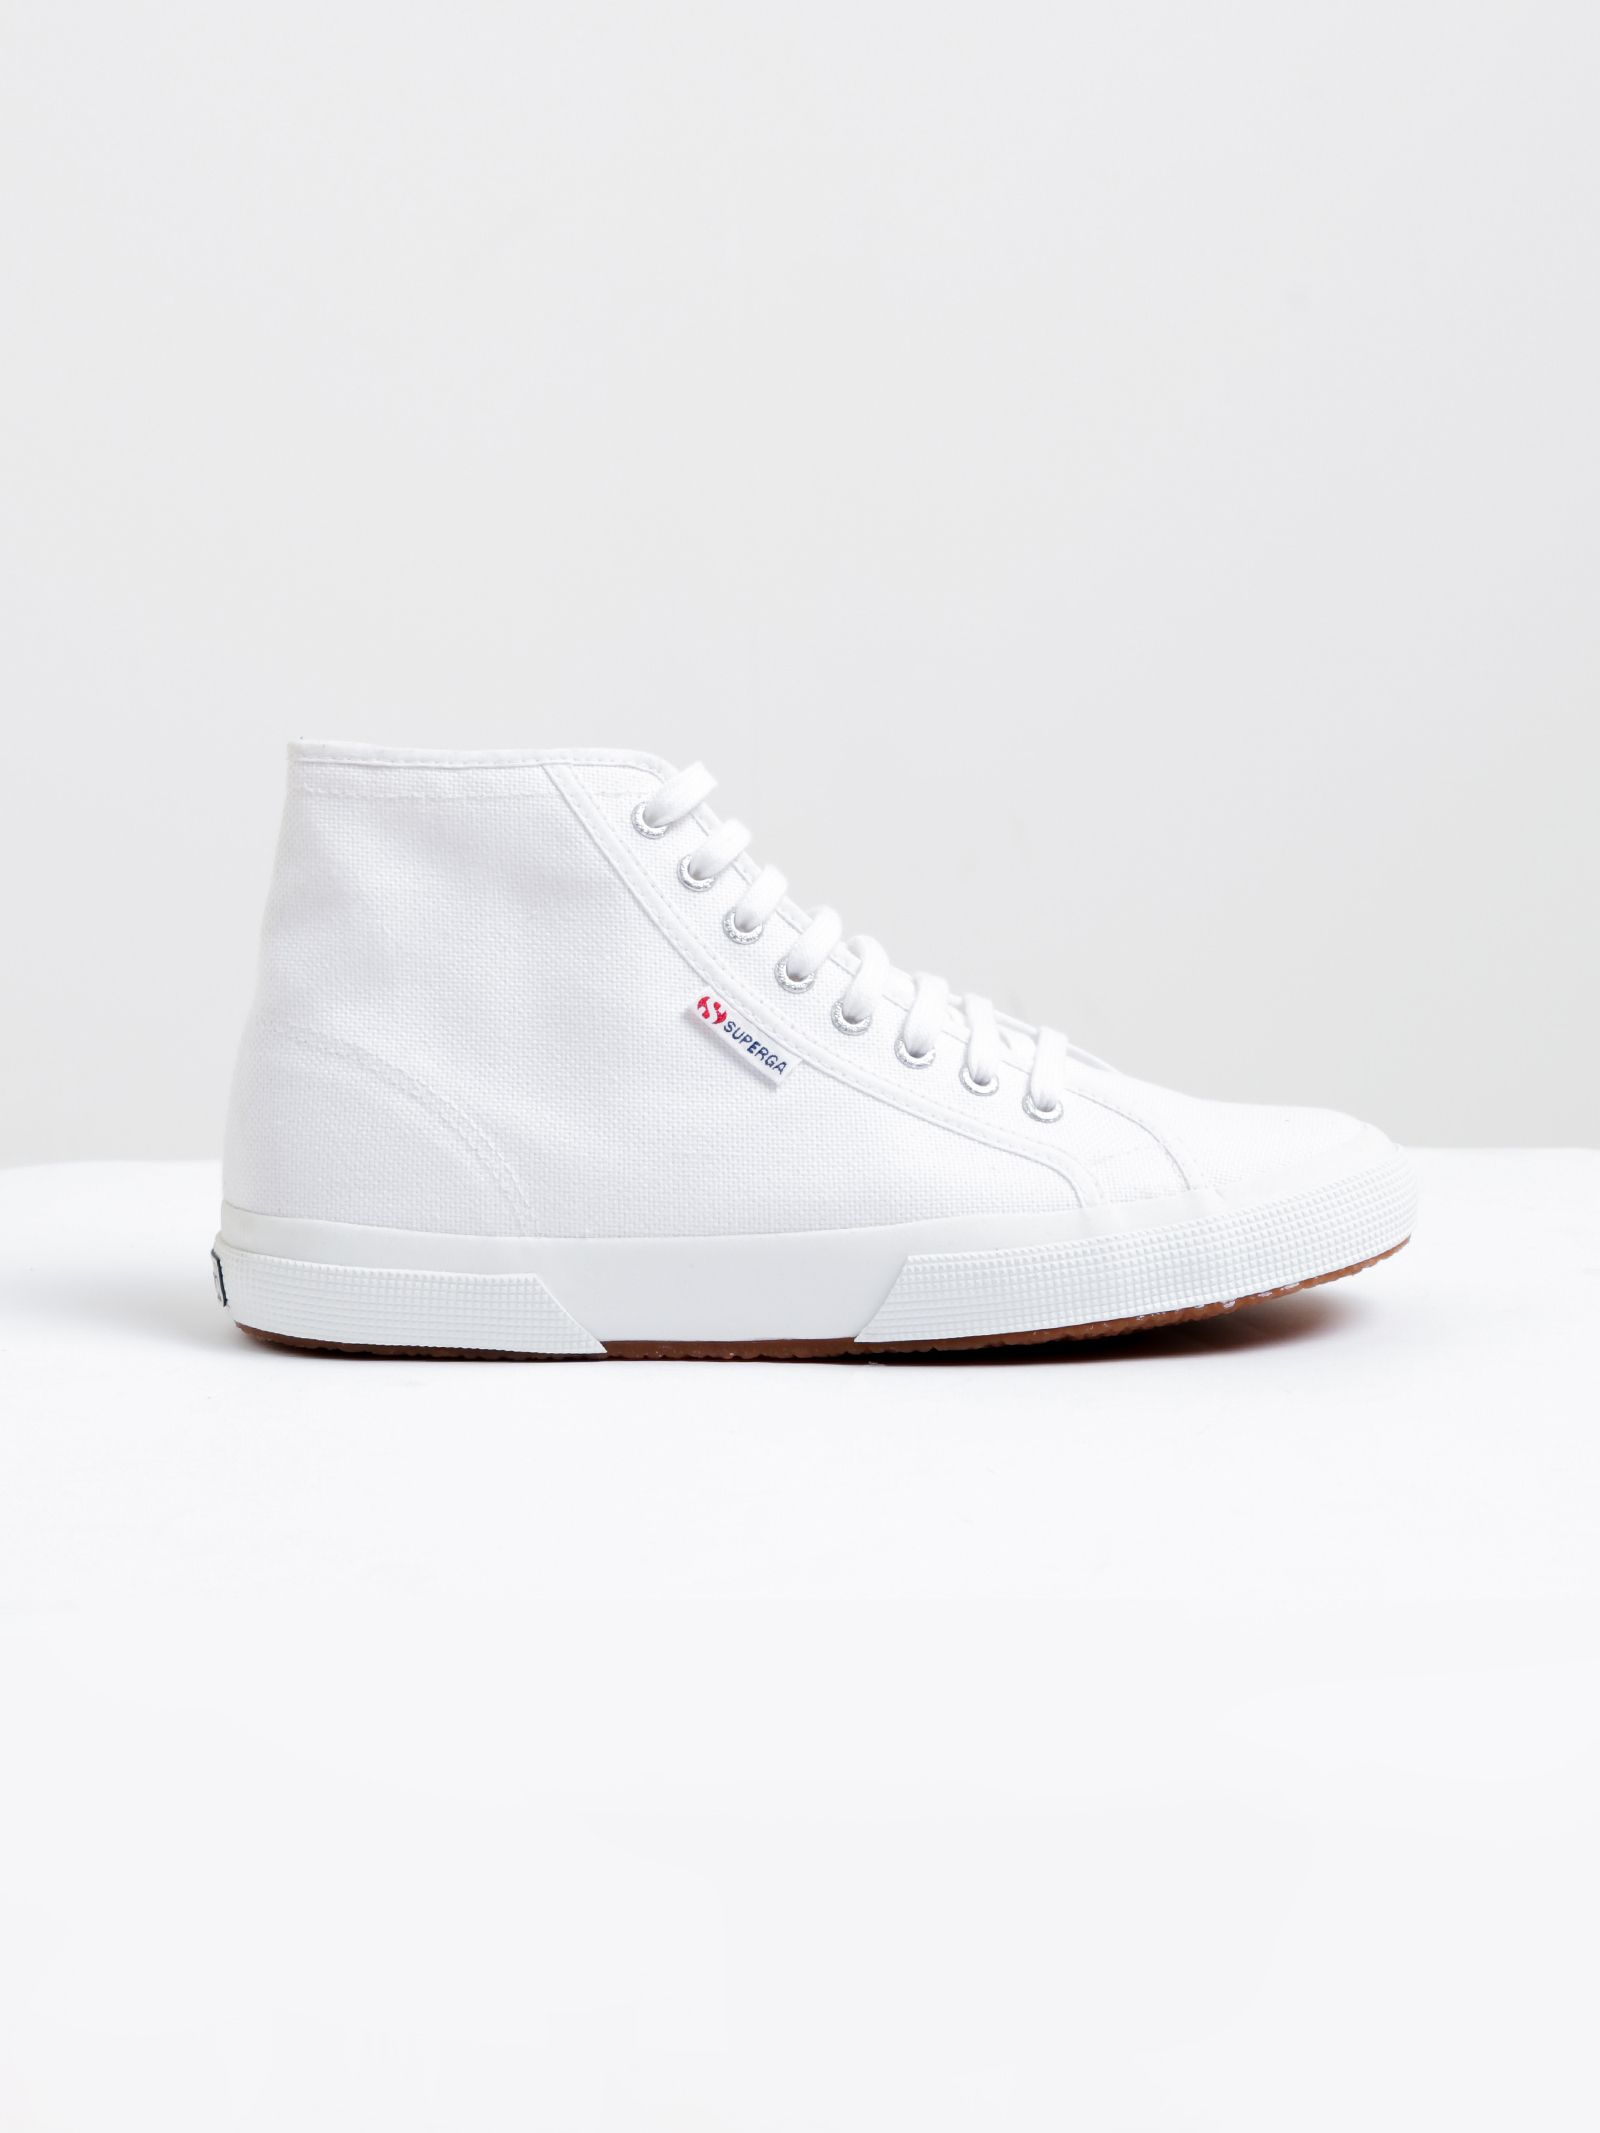 d48a74c98161 Buy Unisex 2795 Cotu Hi Top Sneakers in White by Superga of White color for  only  99.95 at Glue Store. UNISEX WHITE 2795 COTU SNEAKERS by SUPERGA KEY  ...